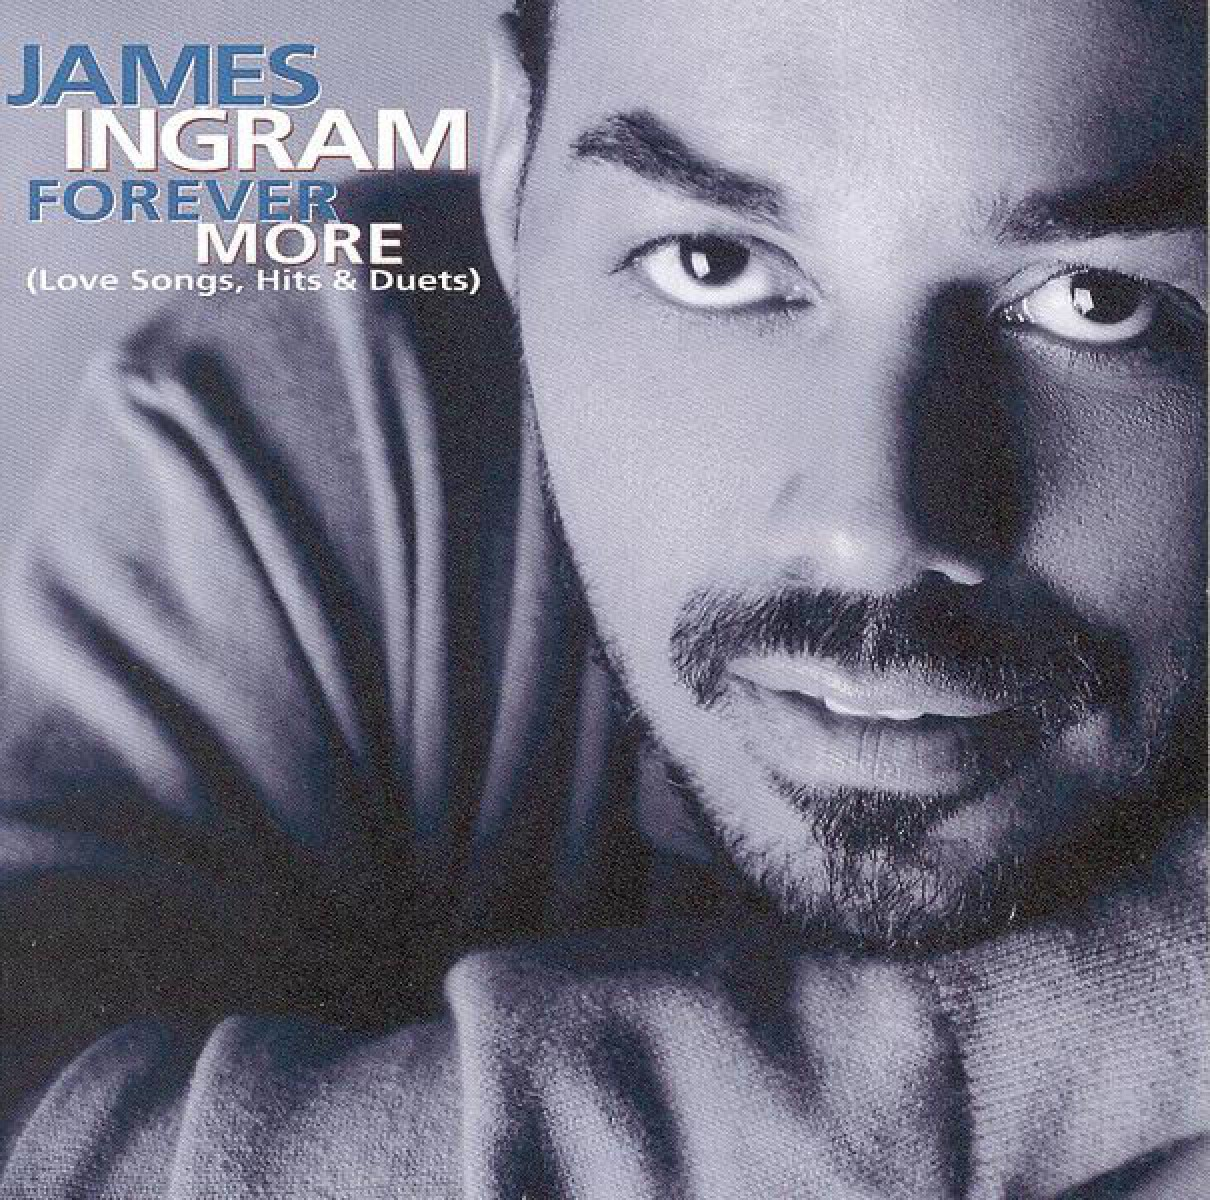 James Ingram - Forever More (Love Songs, Hits & Duets) CD - CDWHILL841